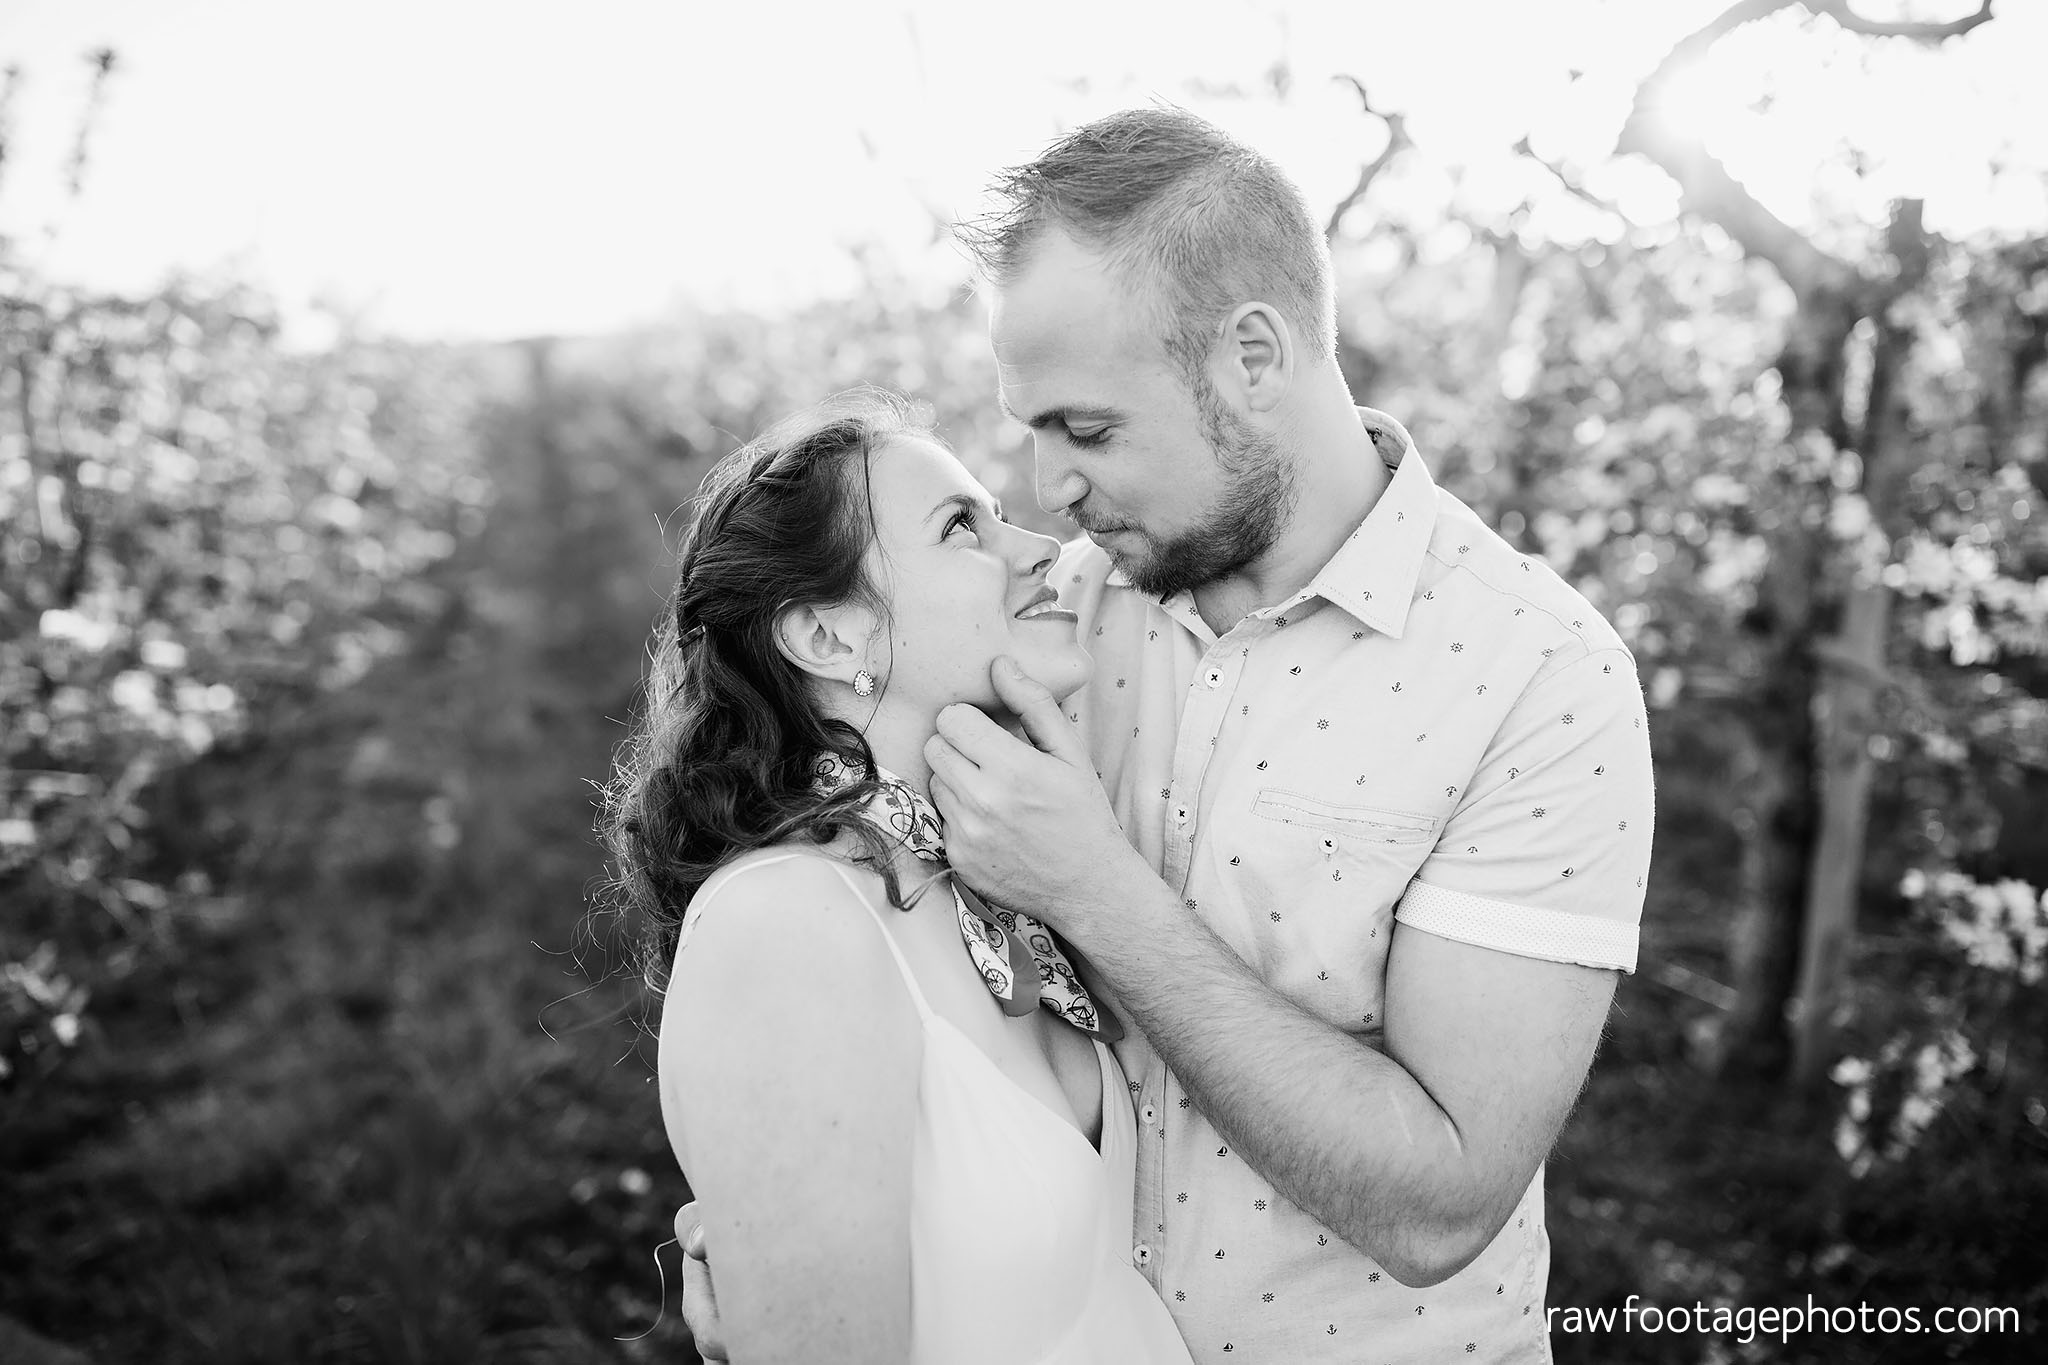 london_ontario_wedding_photographer-raw_footage_photography-engagement_session-airport_session-airplane-balloons-apple_orchard-spring_blooms-apple_blossoms029.jpg